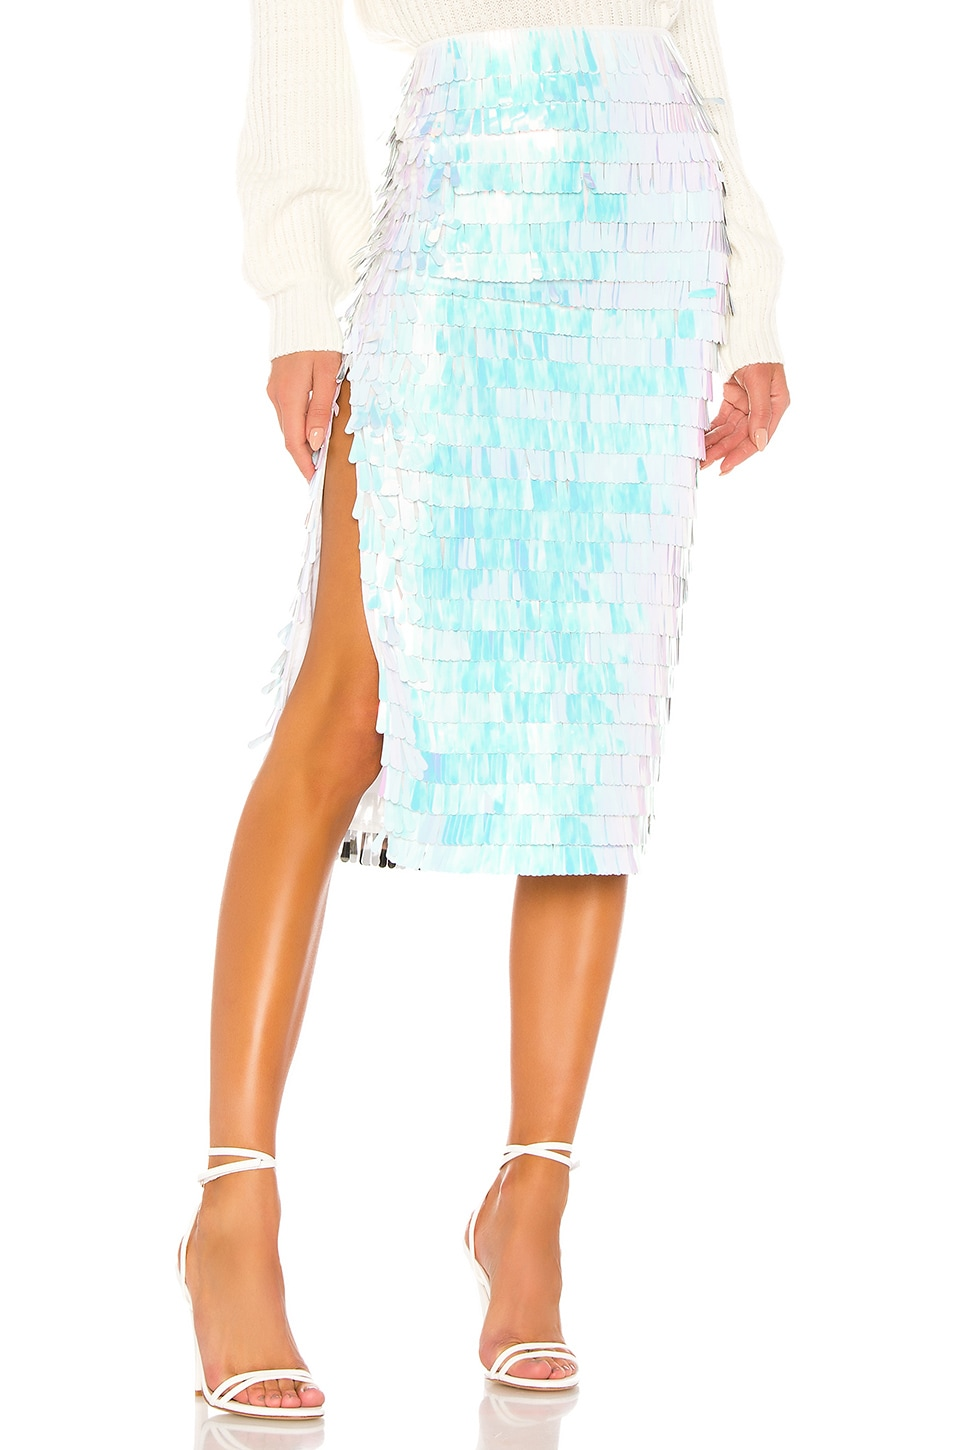 House of Harlow 1960 x REVOLVE Niven Skirt in White